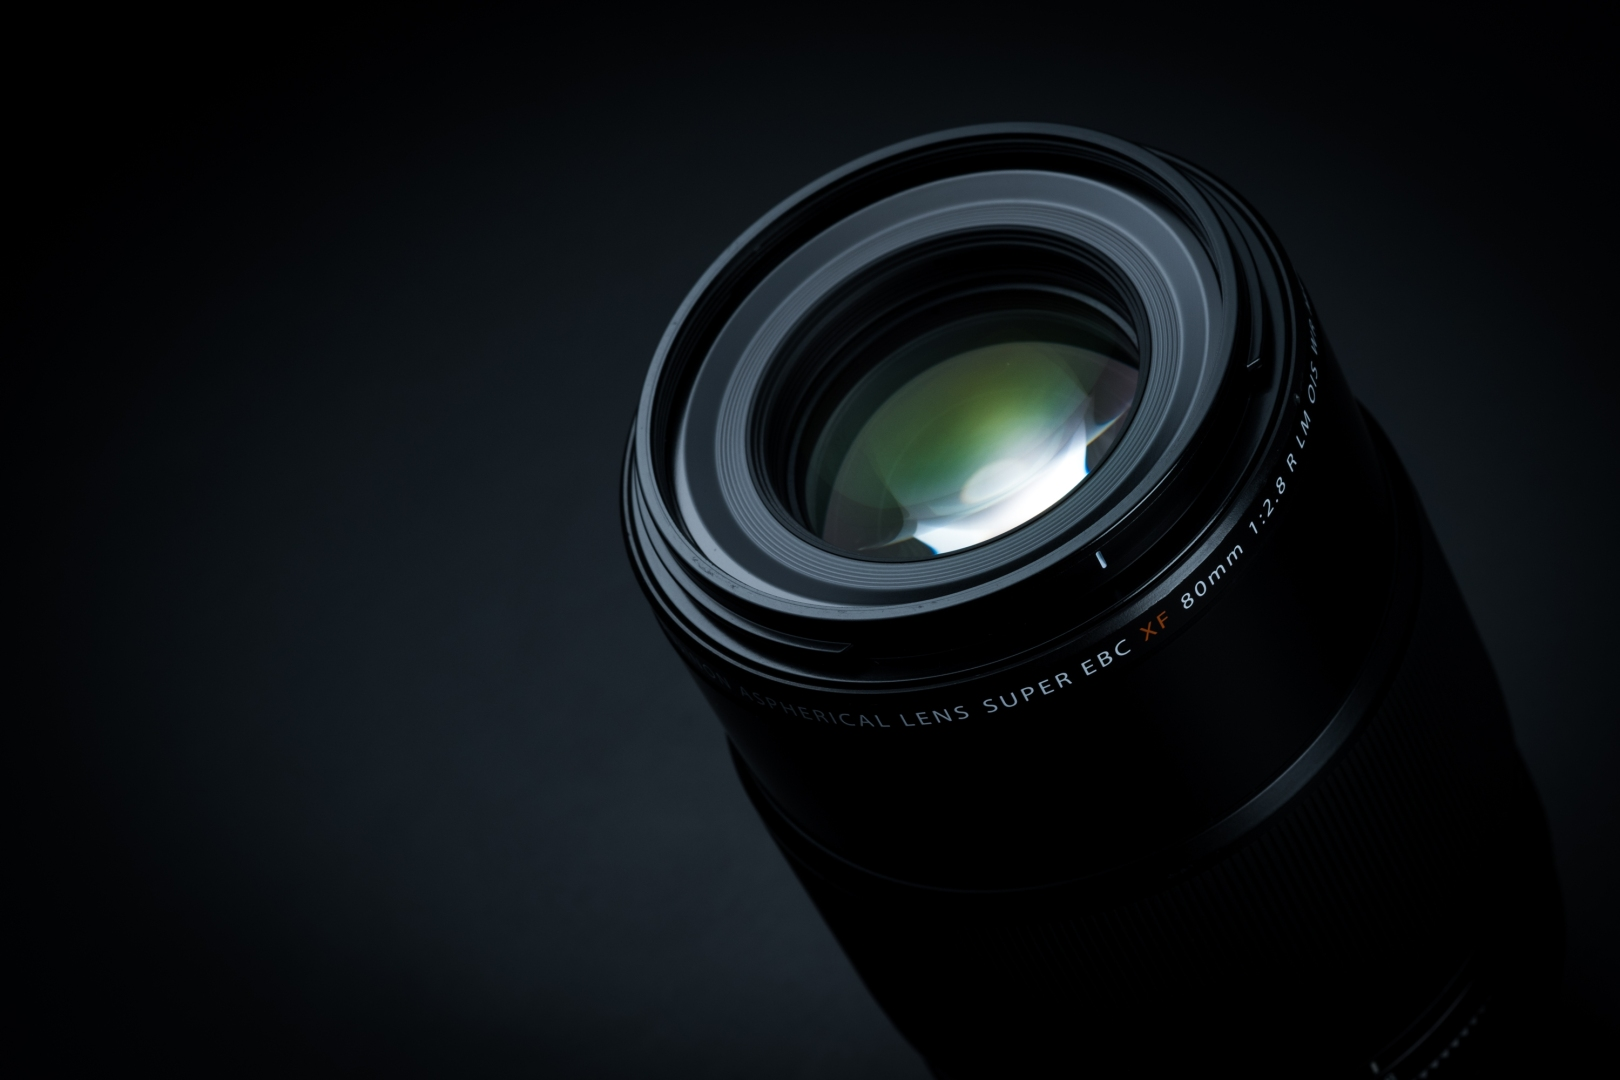 Fujifilm Xf 80mm F 28 Macro Review Closer To Completion X E3 Kit 18 55mm 4 R Lm Ois Silver